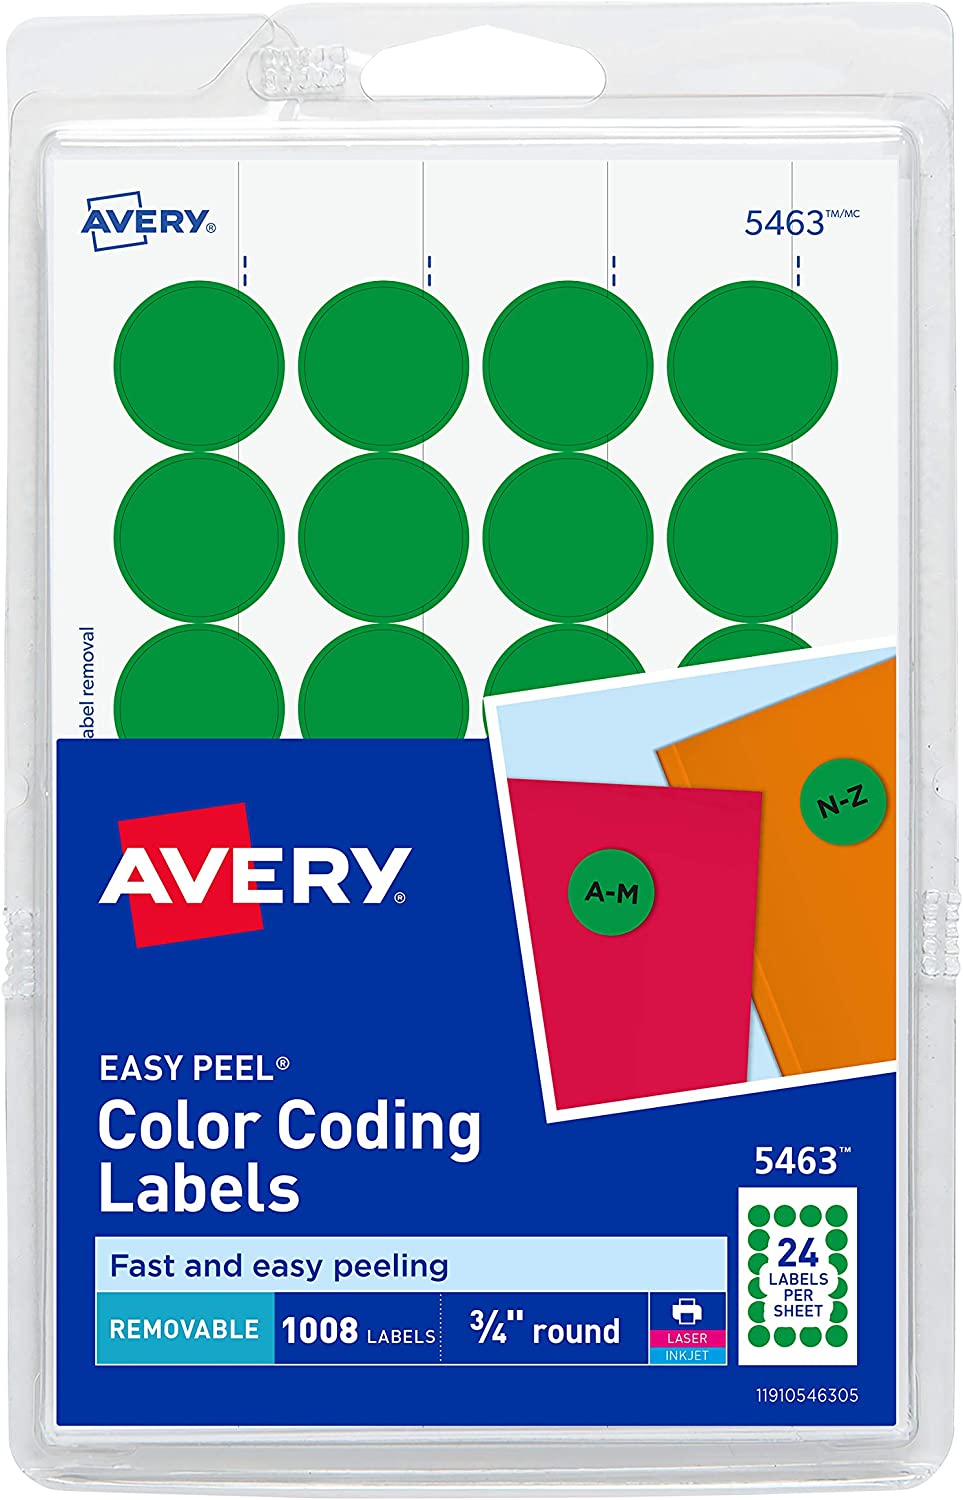 AVERY Print/Write Self-Adhesive Removable Labels, 0.75 Inch Diameter, Green, 1008 per Pack (05463) : All Purpose Labels : Office Products